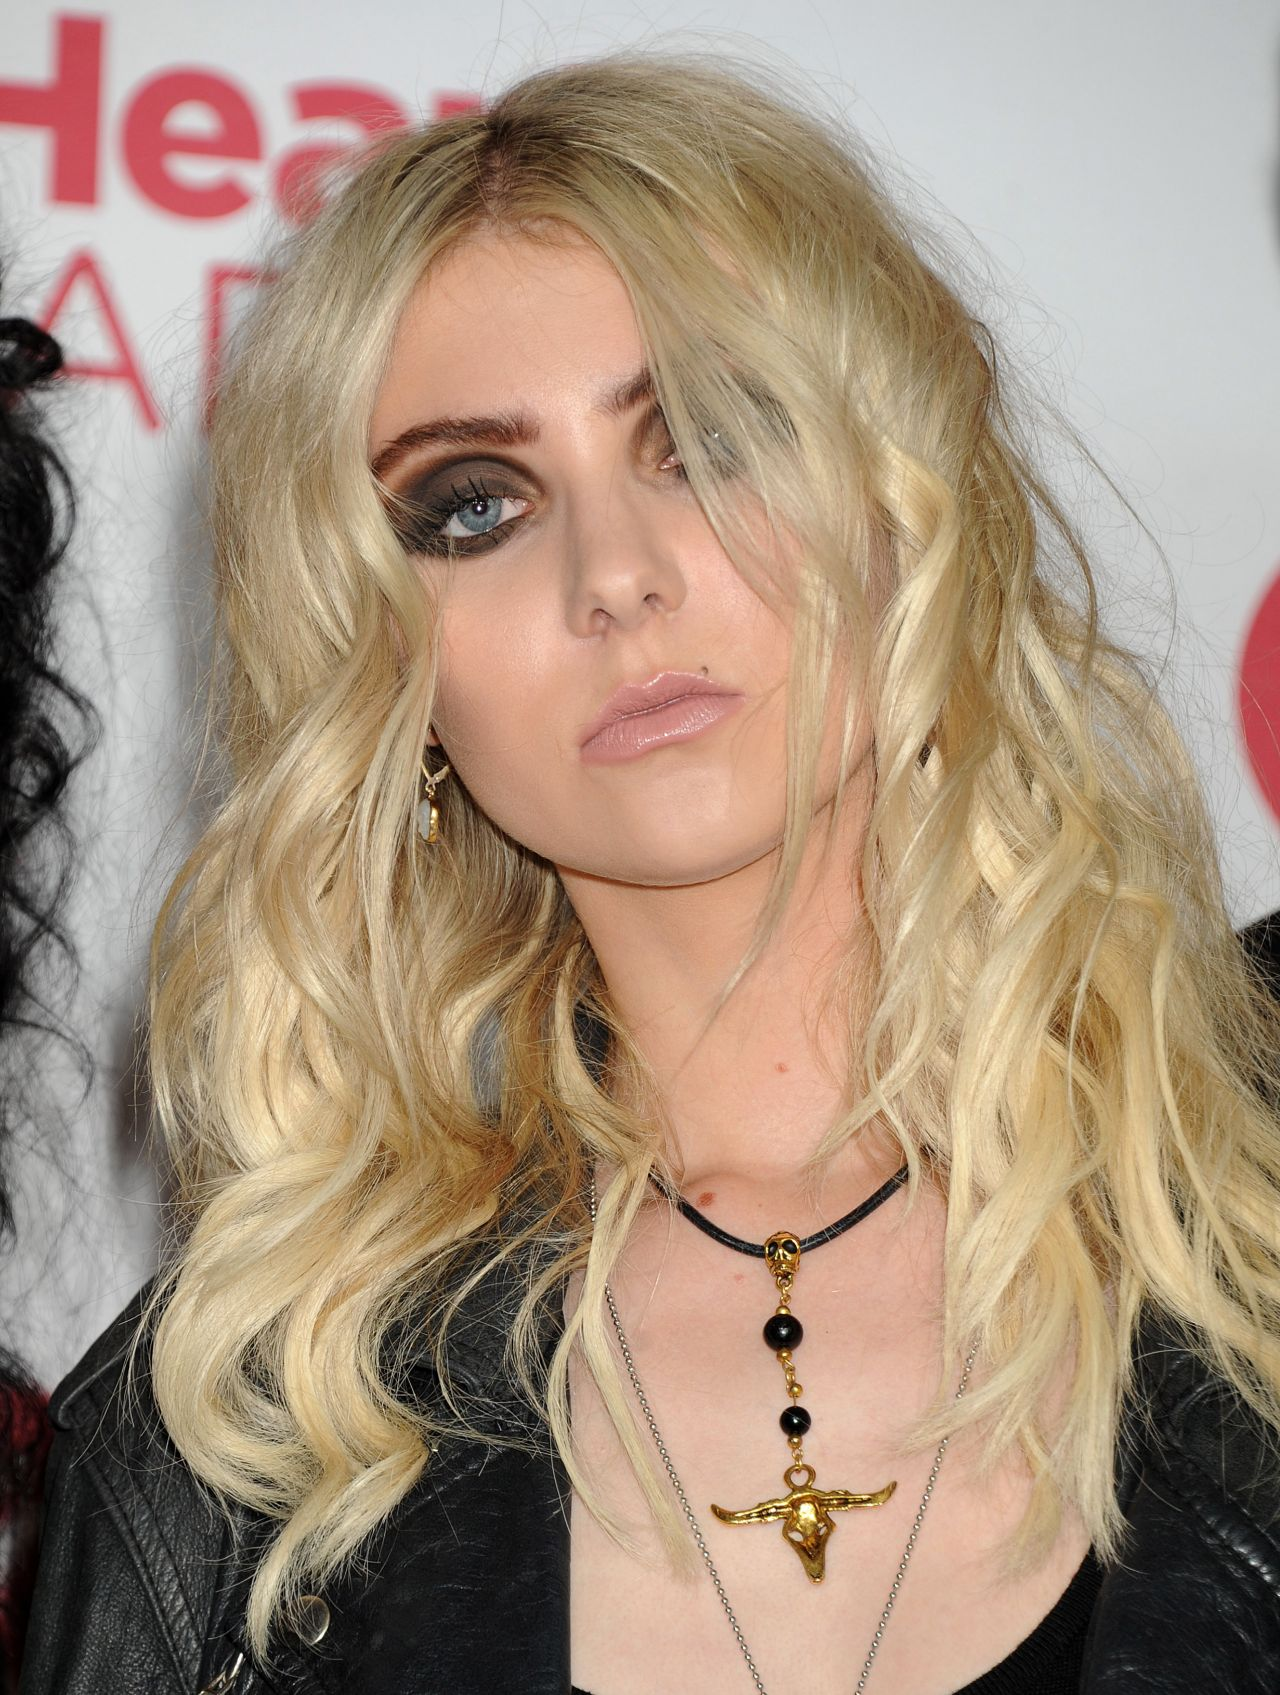 Taylor Momsen in Paris - Le Grand Journal Show - March 2014 |Taylor Momsen 2014